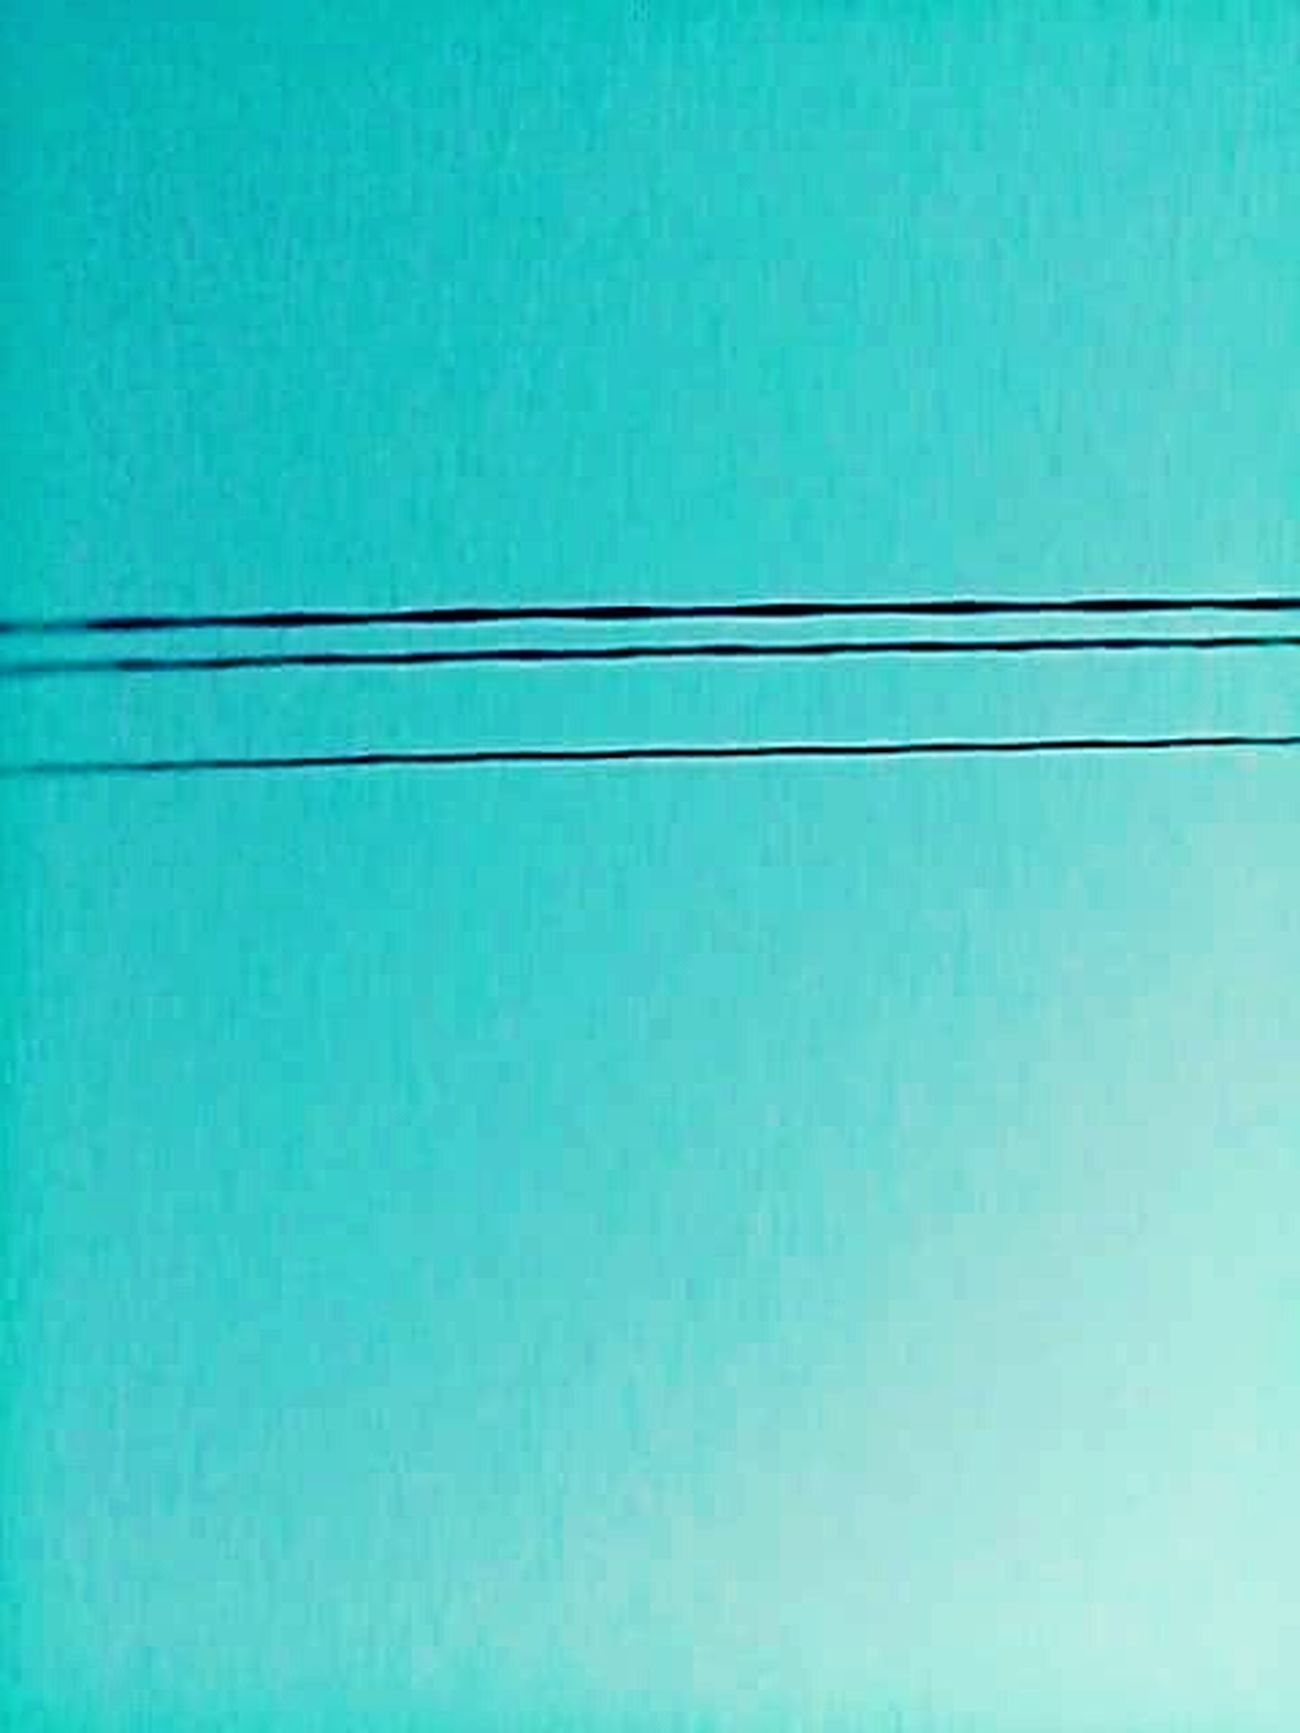 Smallthingsthatmakemehappy Small Things Electricity Cable Mobilephotography Mobile Photography PhonePhotography Phonecamera Wallpaper Sky Small Detail Electricity  Electric Lines